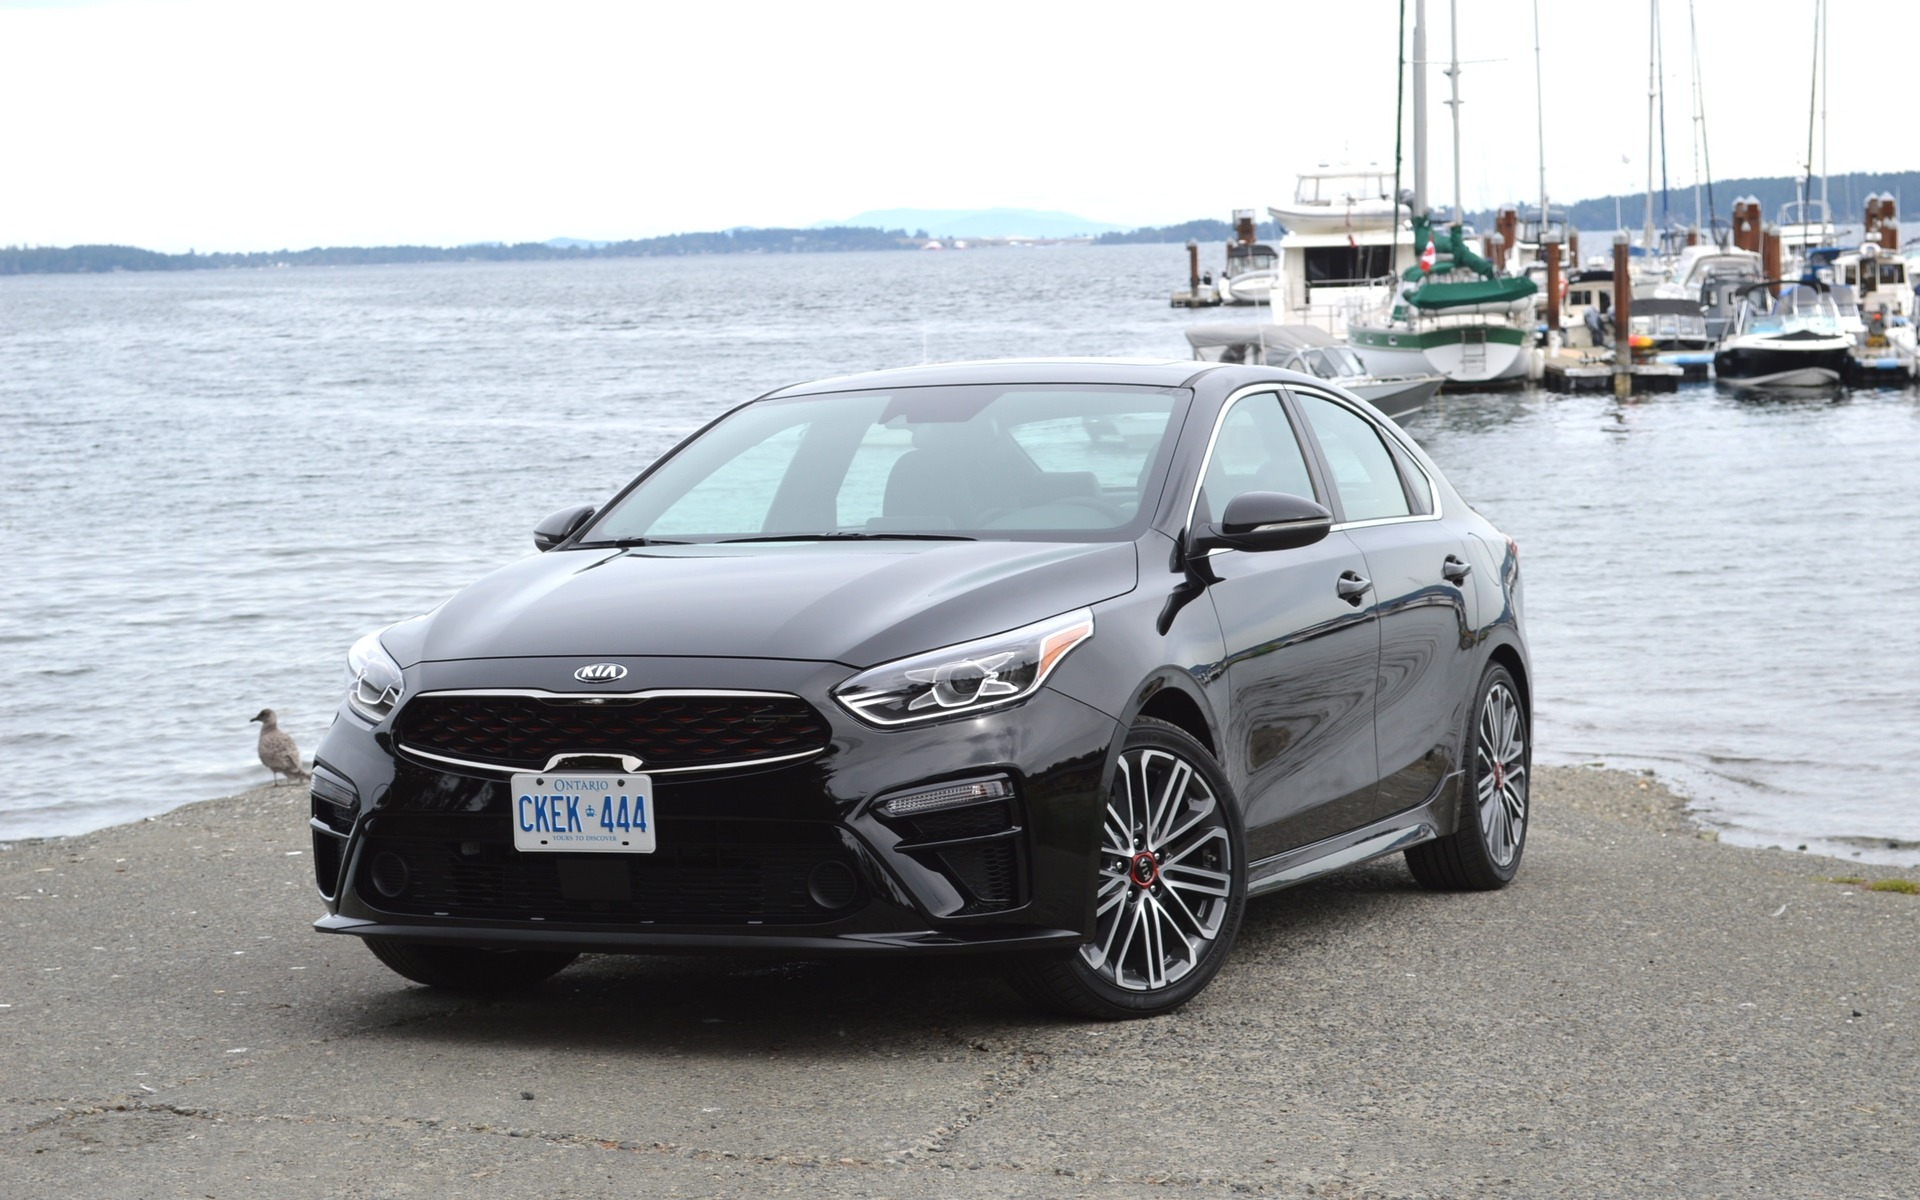 2020 Kia Forte Review.2020 Kia Forte Gt The Civic Si Can Rest Easy The Car Guide